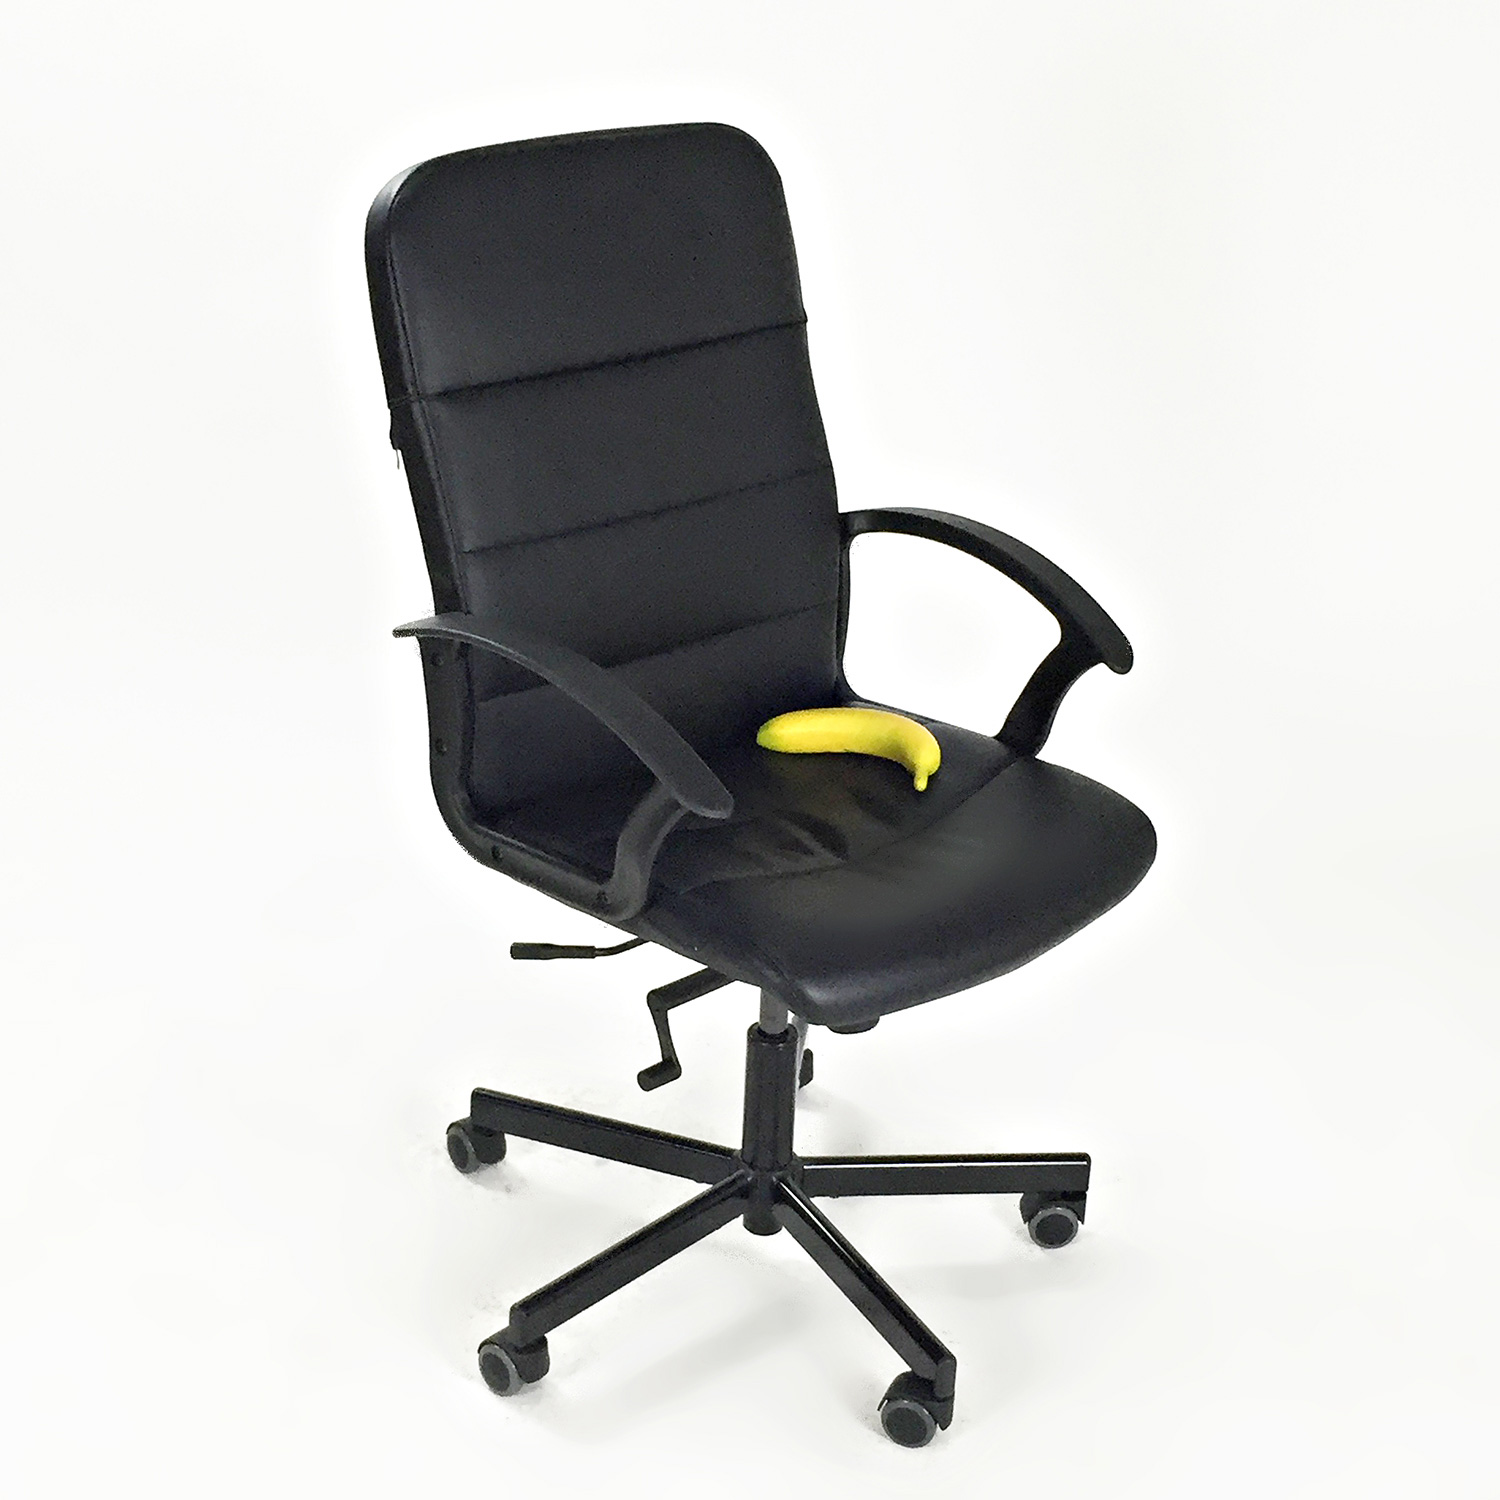 58 off ikea black office chair chairs. Black Bedroom Furniture Sets. Home Design Ideas